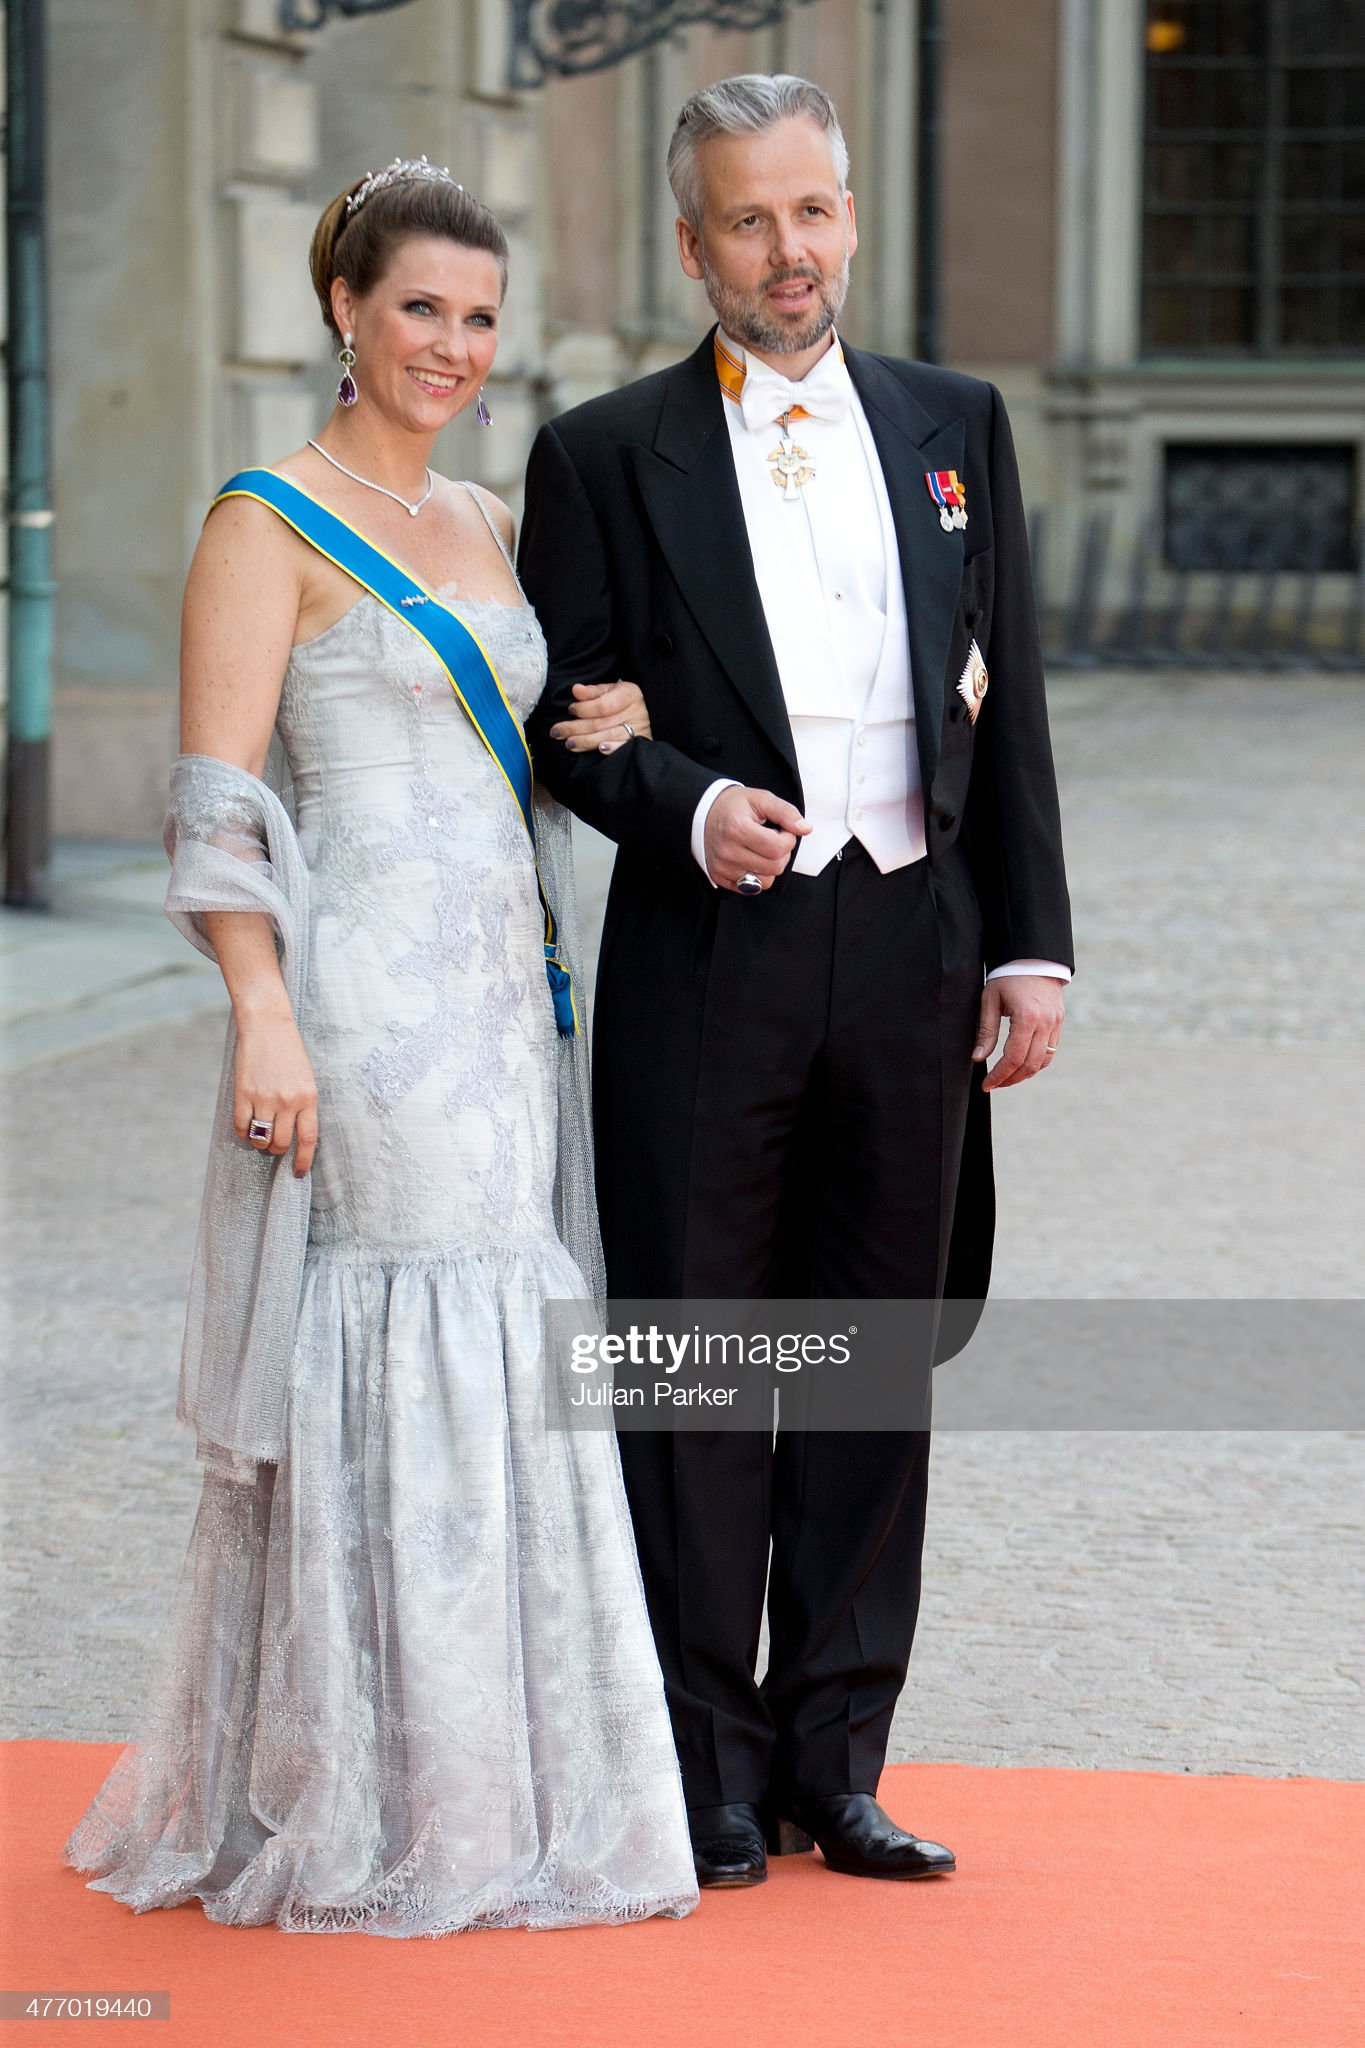 Wedding Of Prince Carl Philip Of Sweden And Sofia Hellqvist : News Photo